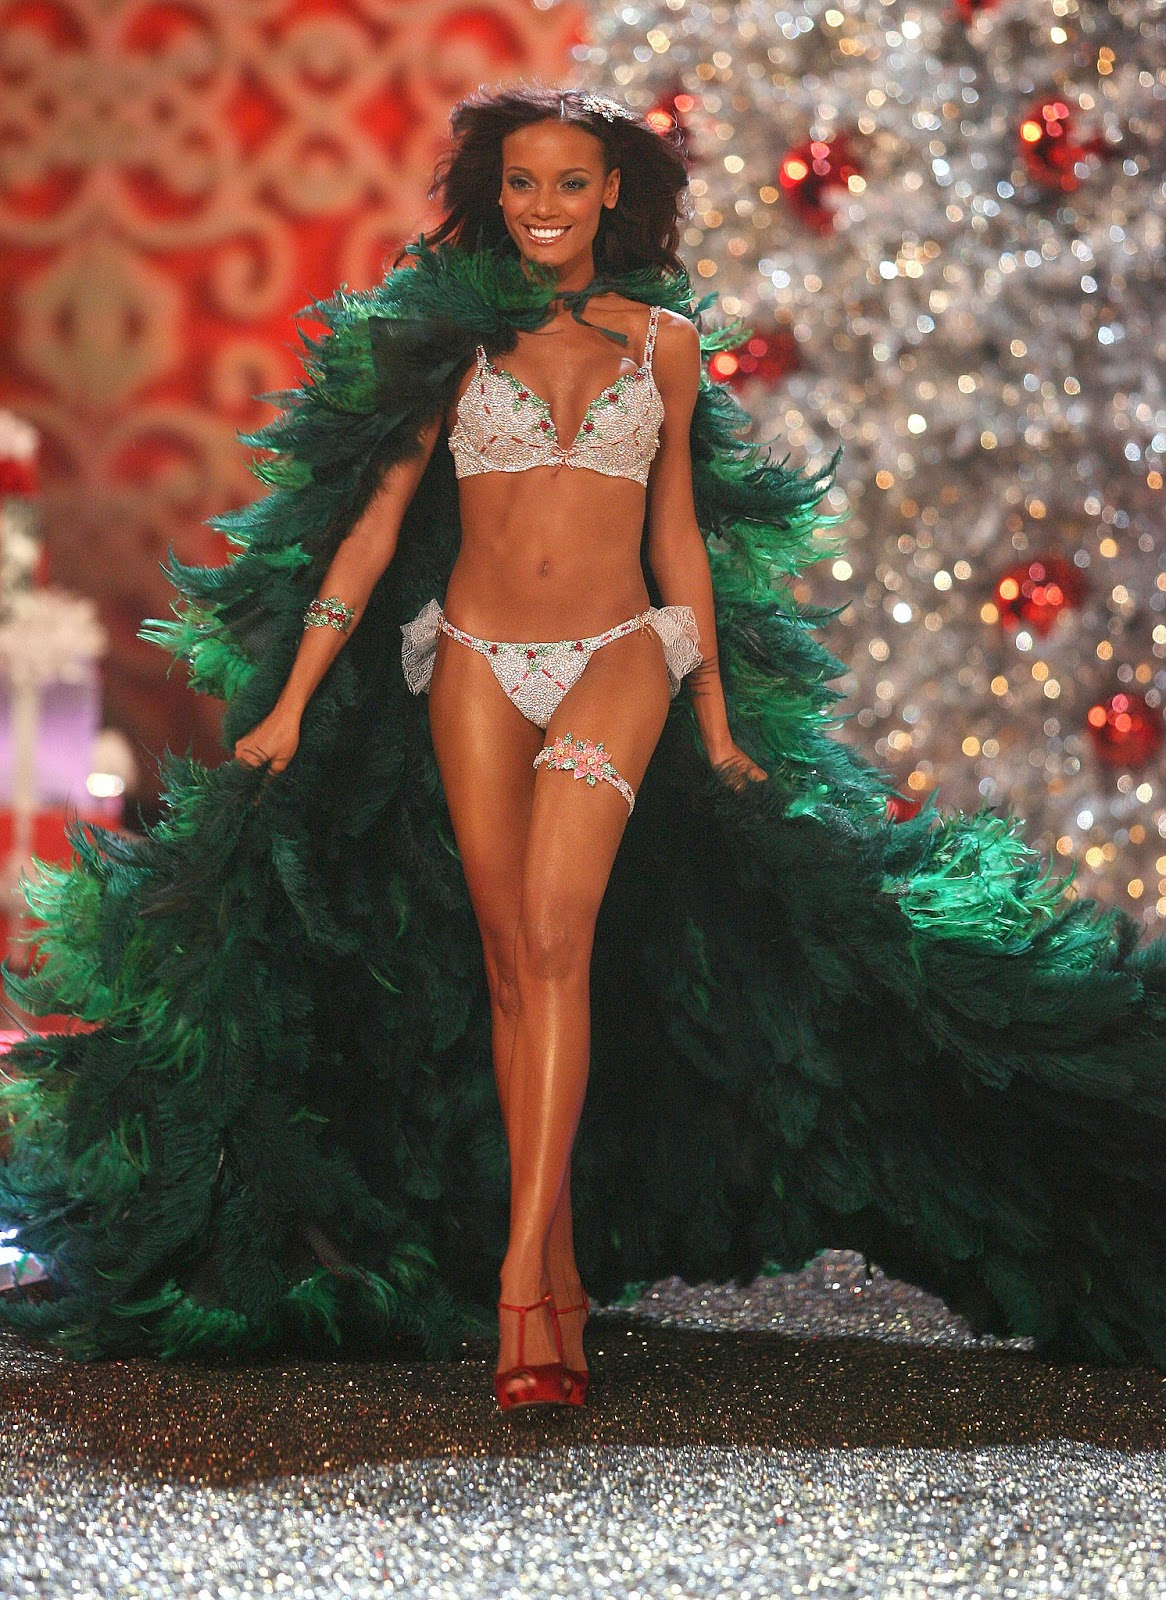 Selita Ebanks - Holiday Fantasy Bra (2007)